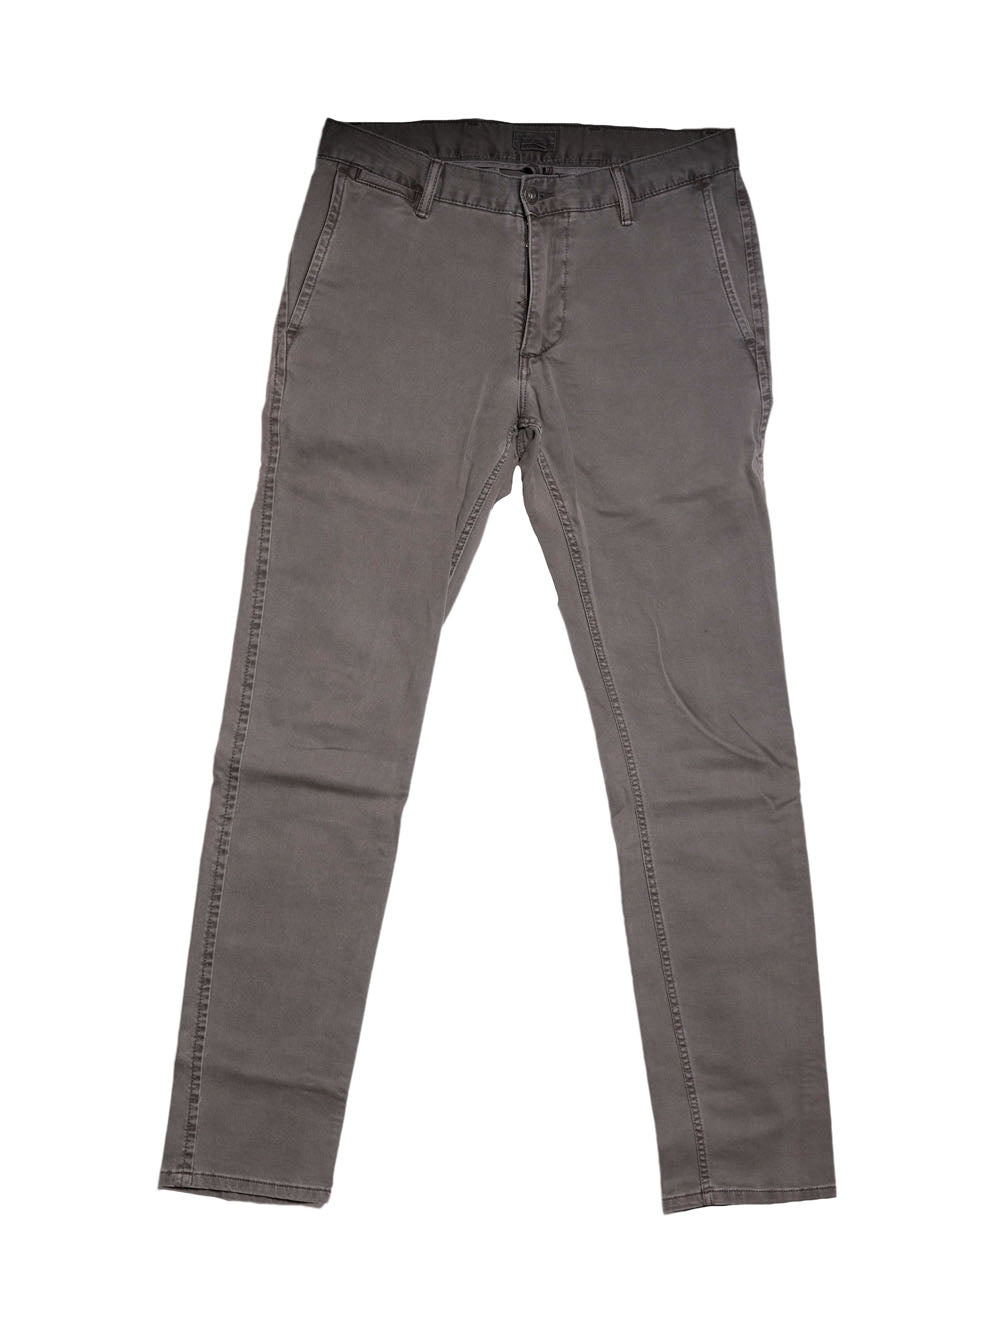 Front photo of Preloved Dockers Grey Man's trousers - size 36/S